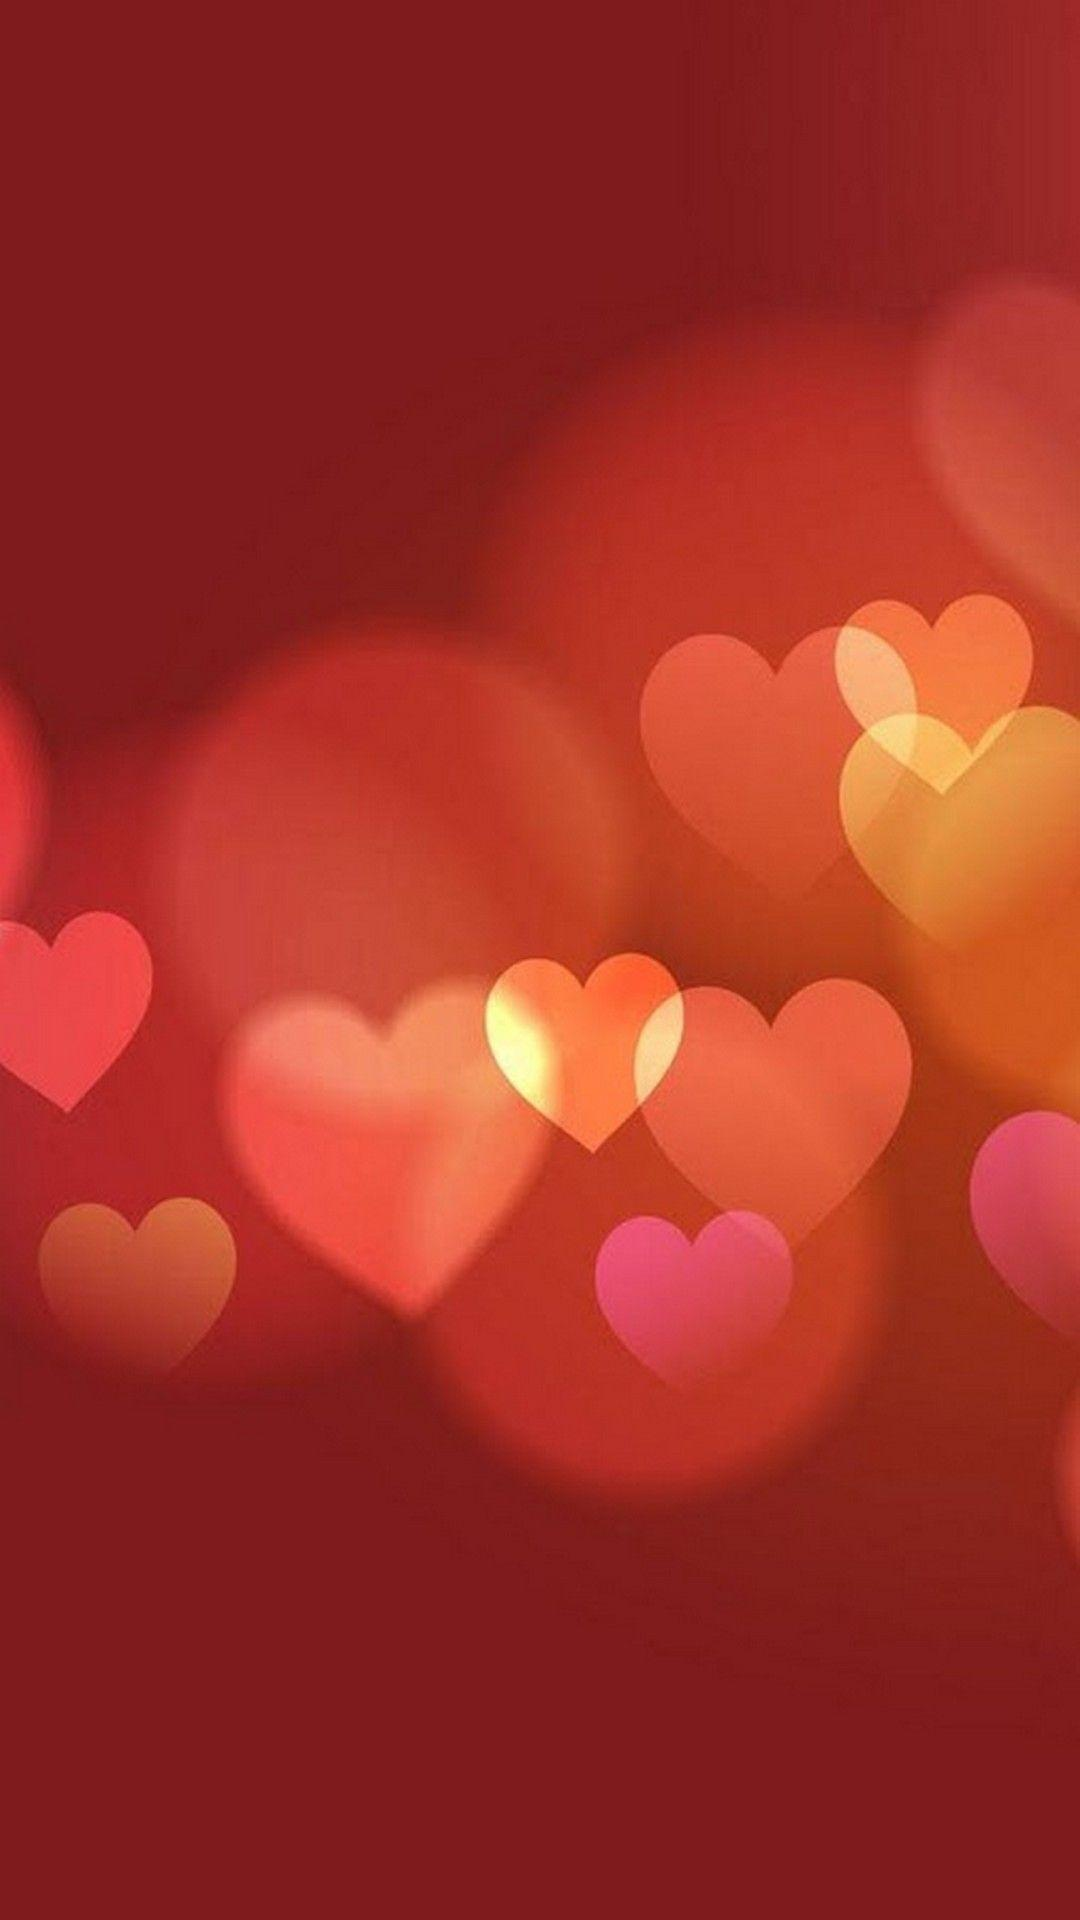 43 Best Free Cute Valentine's Day Wallpapers